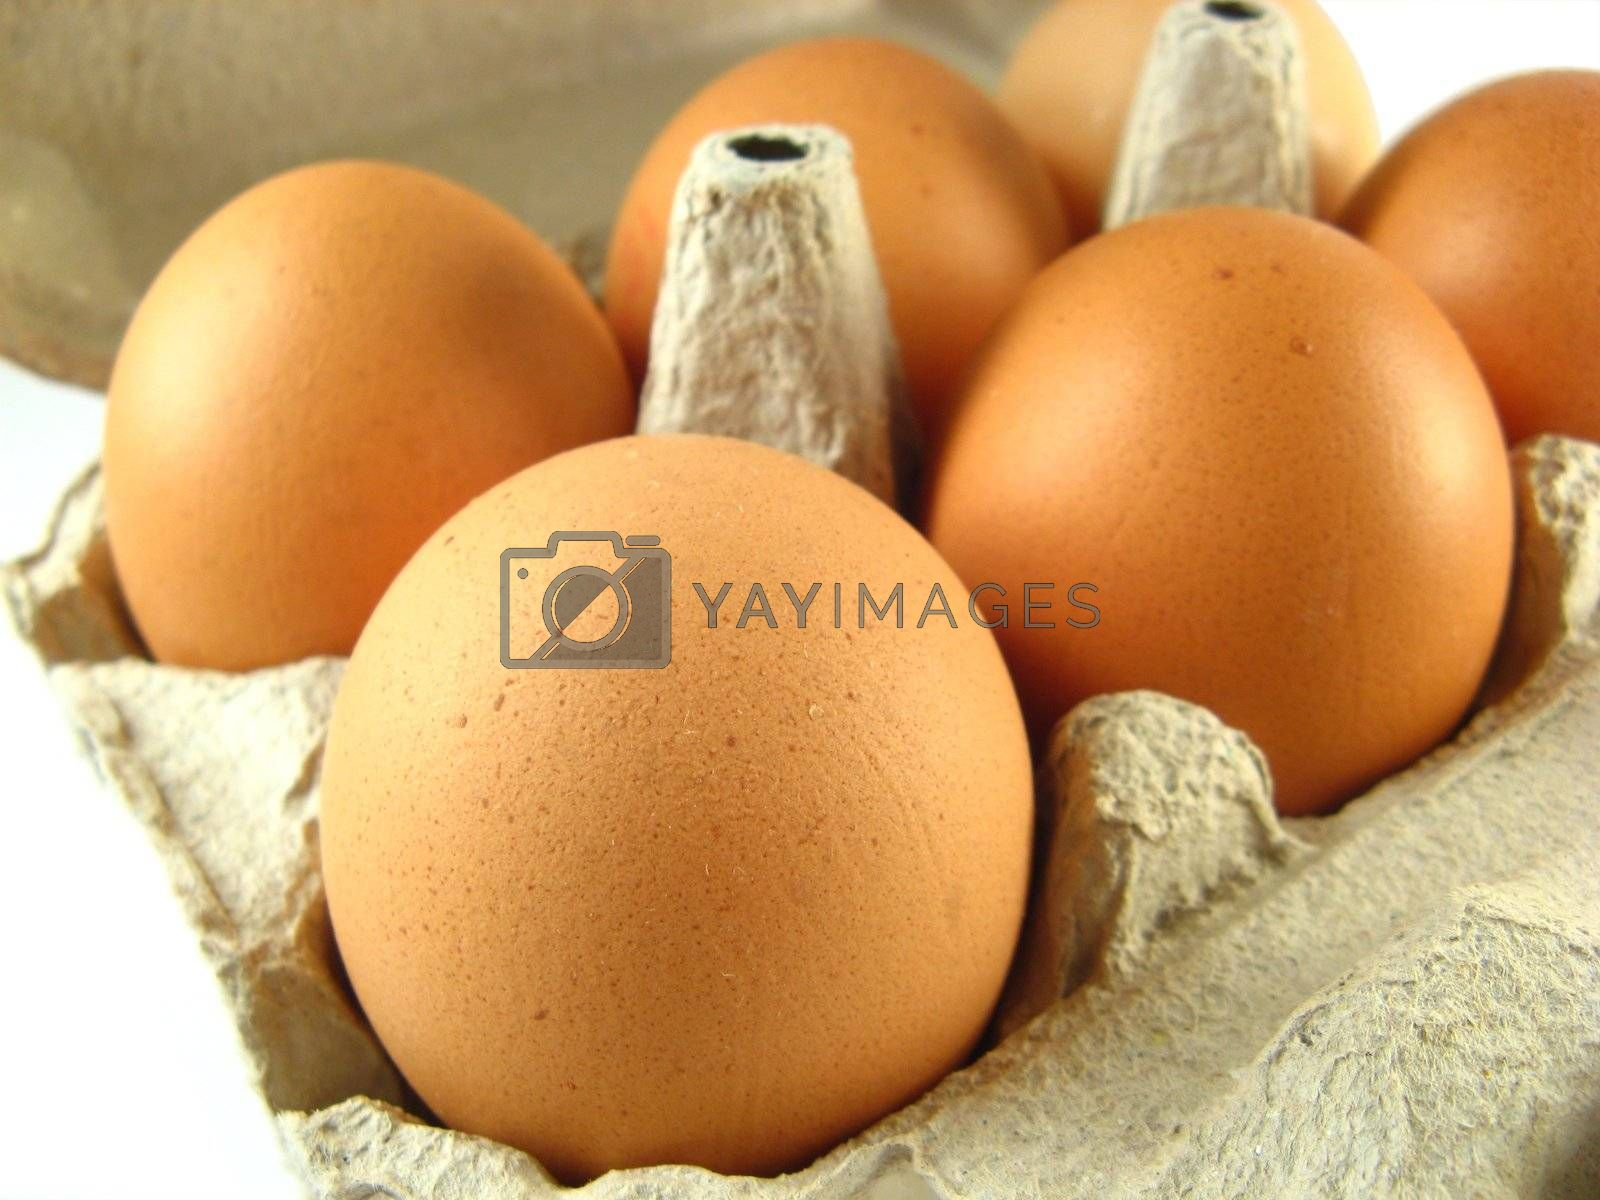 close-up image of some eggs in a box